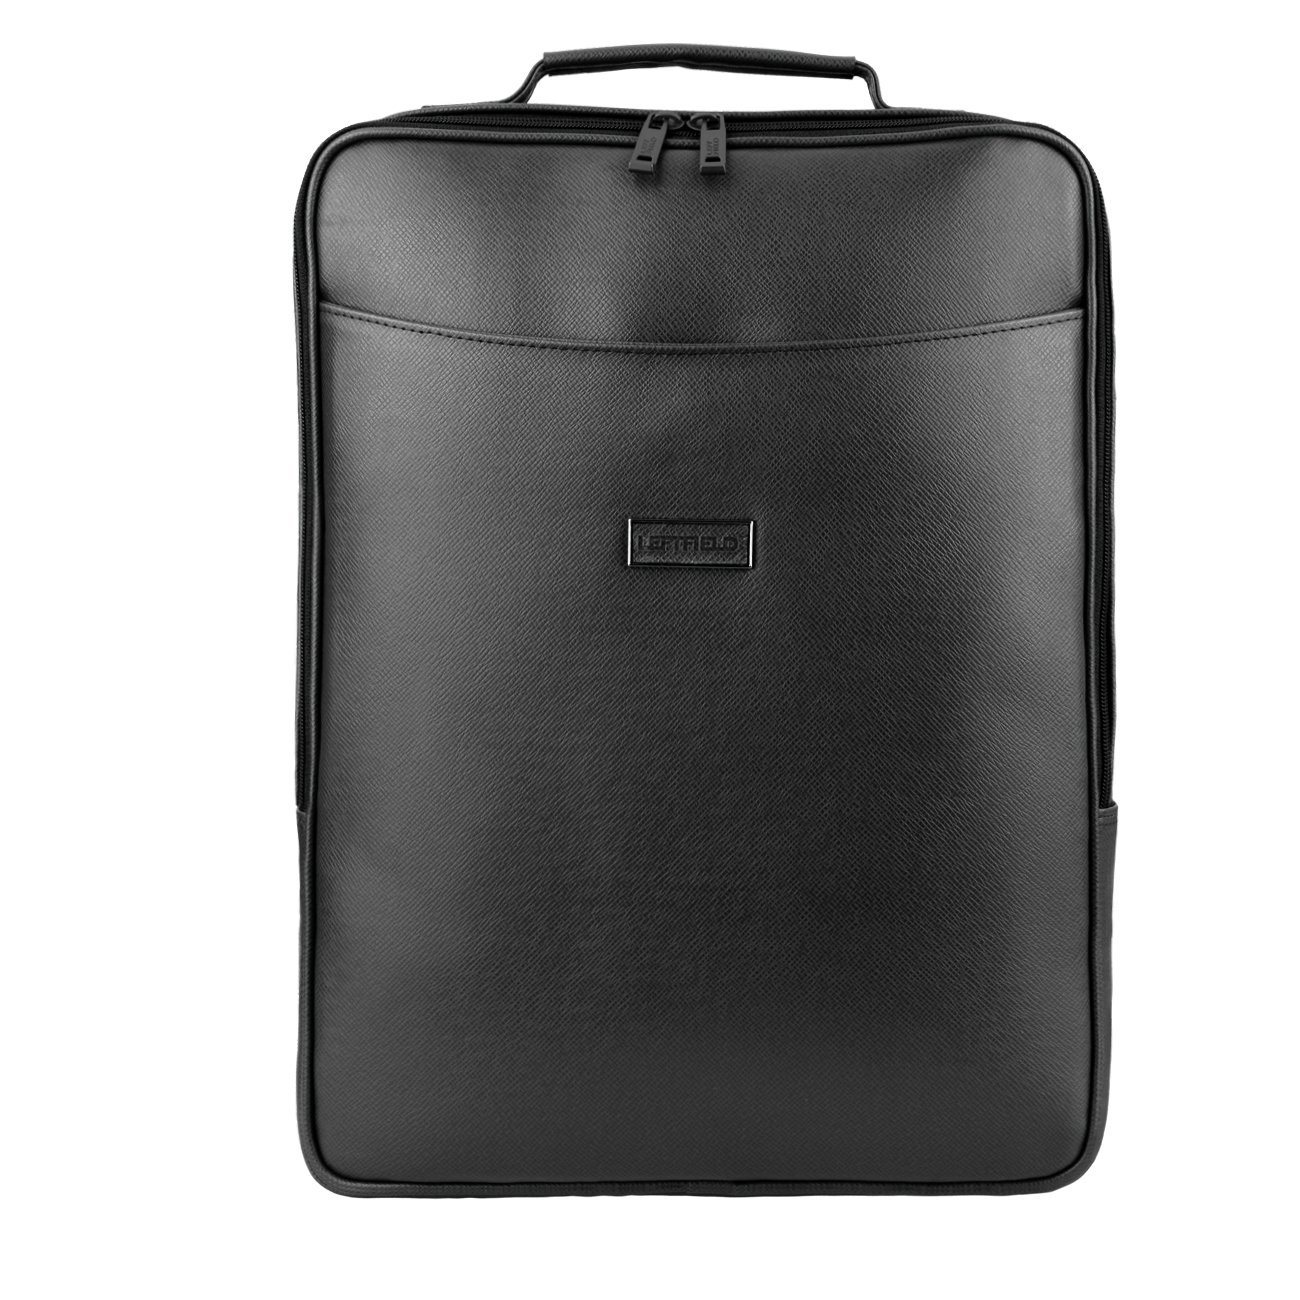 Black Leather Laptop Backpack from Leftfield